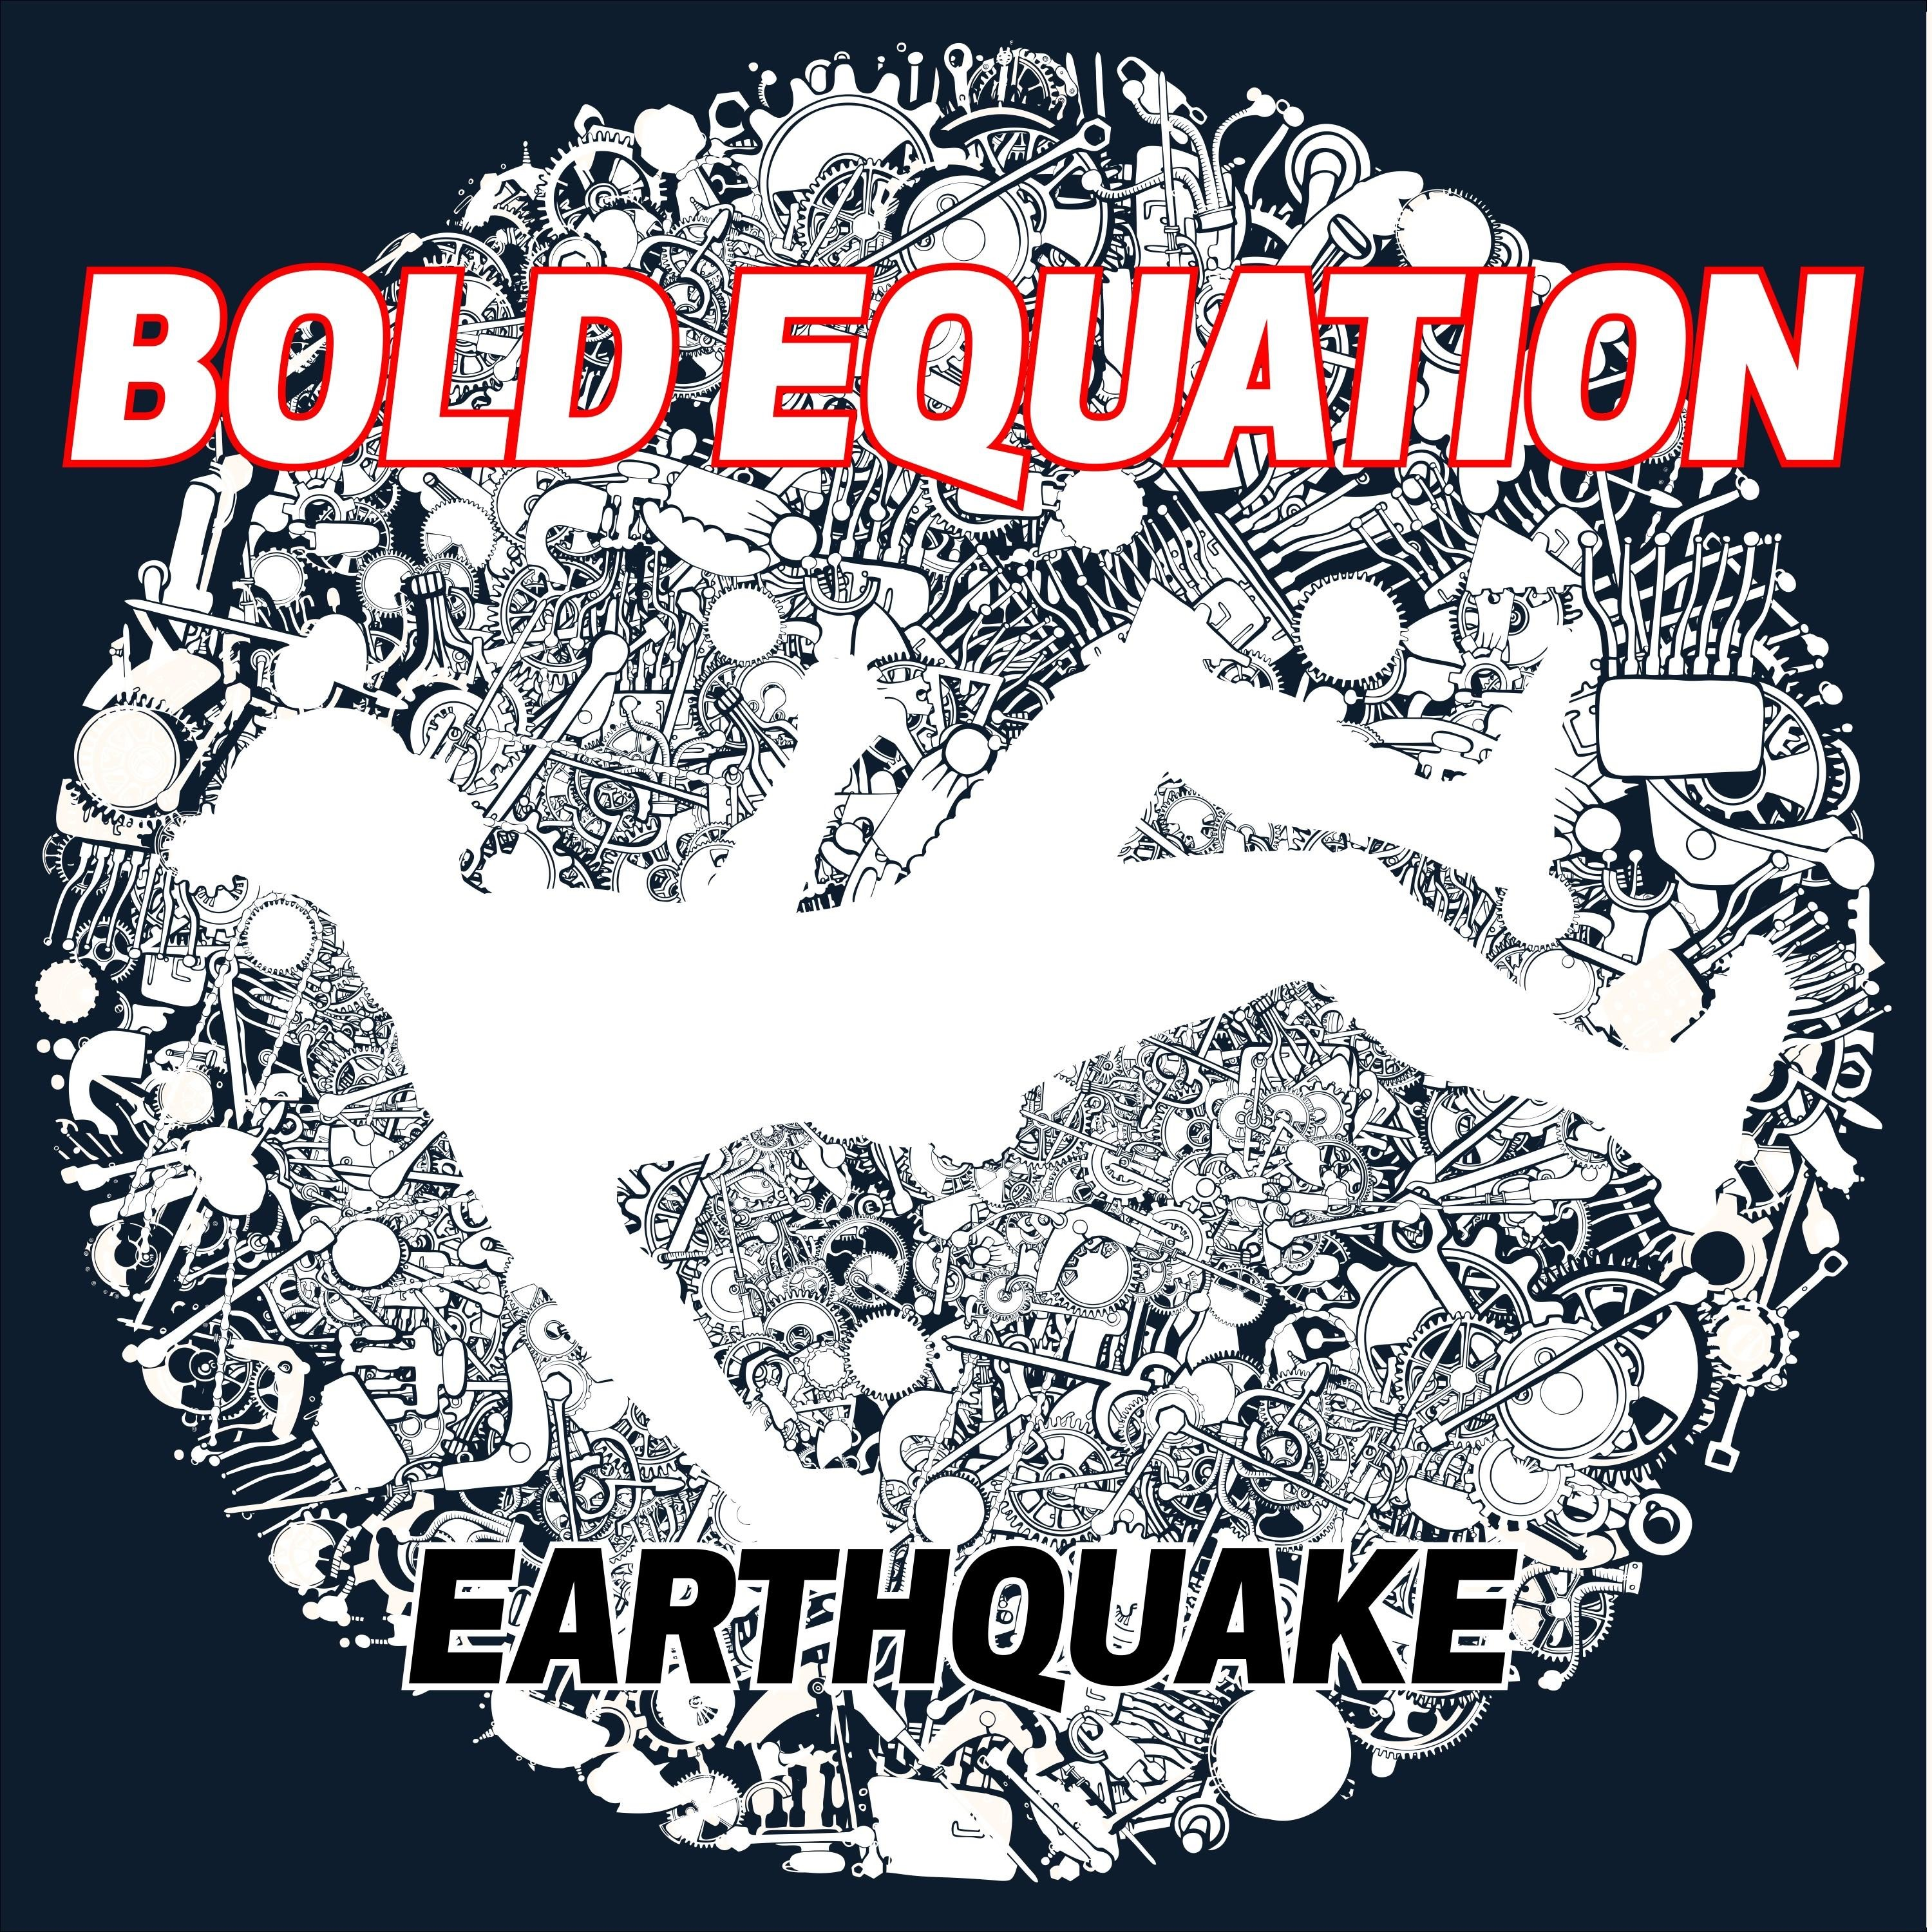 MP3 Songs Online:♫ Guns Burst - Bold Equation album Earthquake. Dubstep,Music,Electronic listen to music online free without downloading.